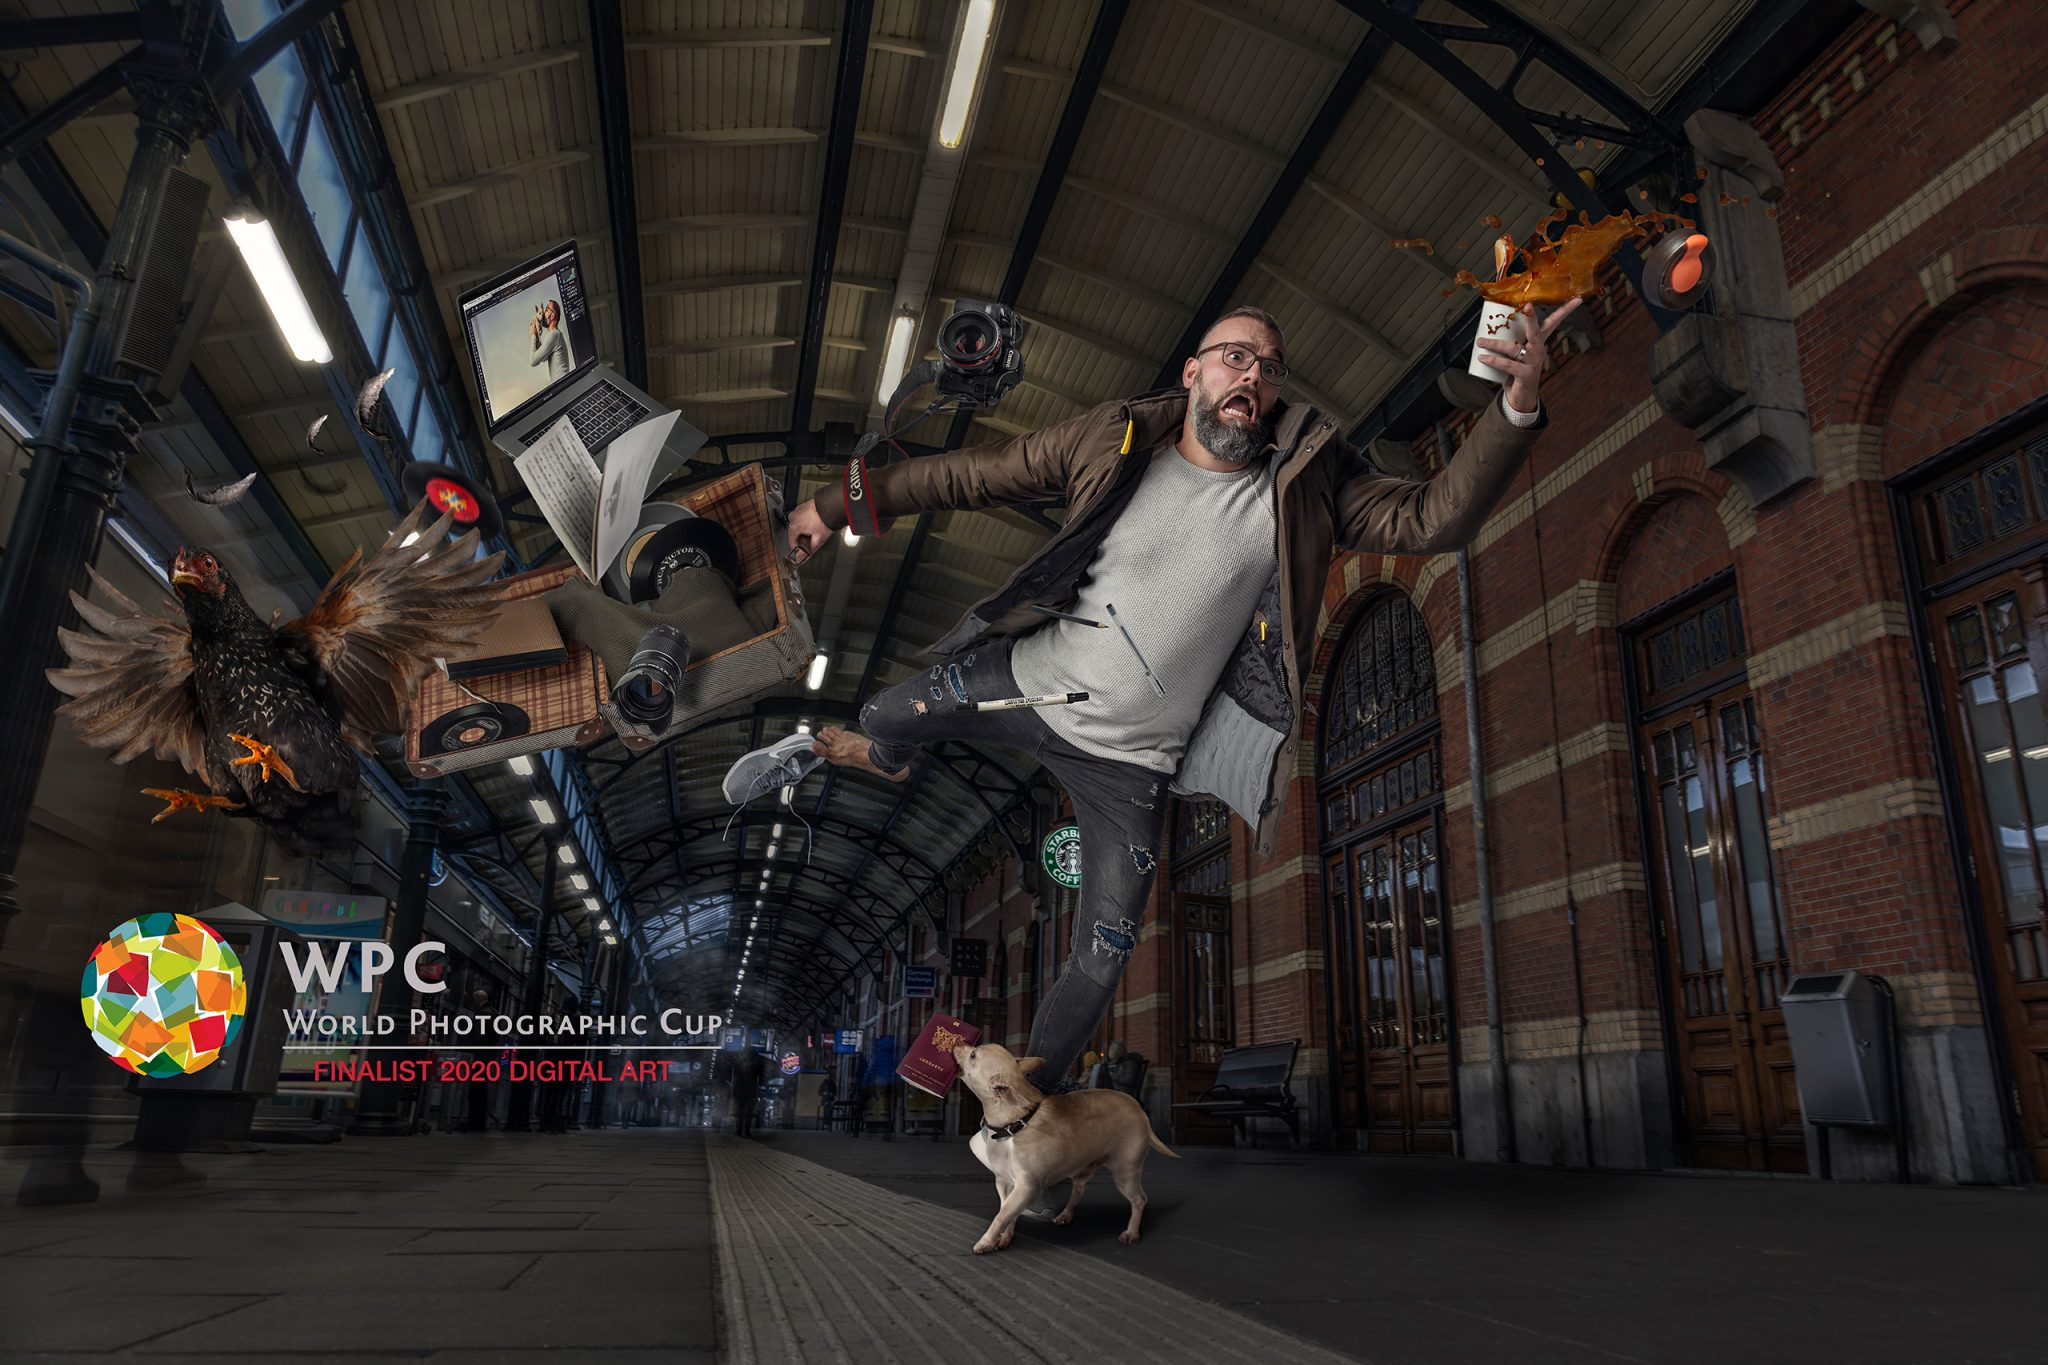 Finalist 2020 World Photographic Cup